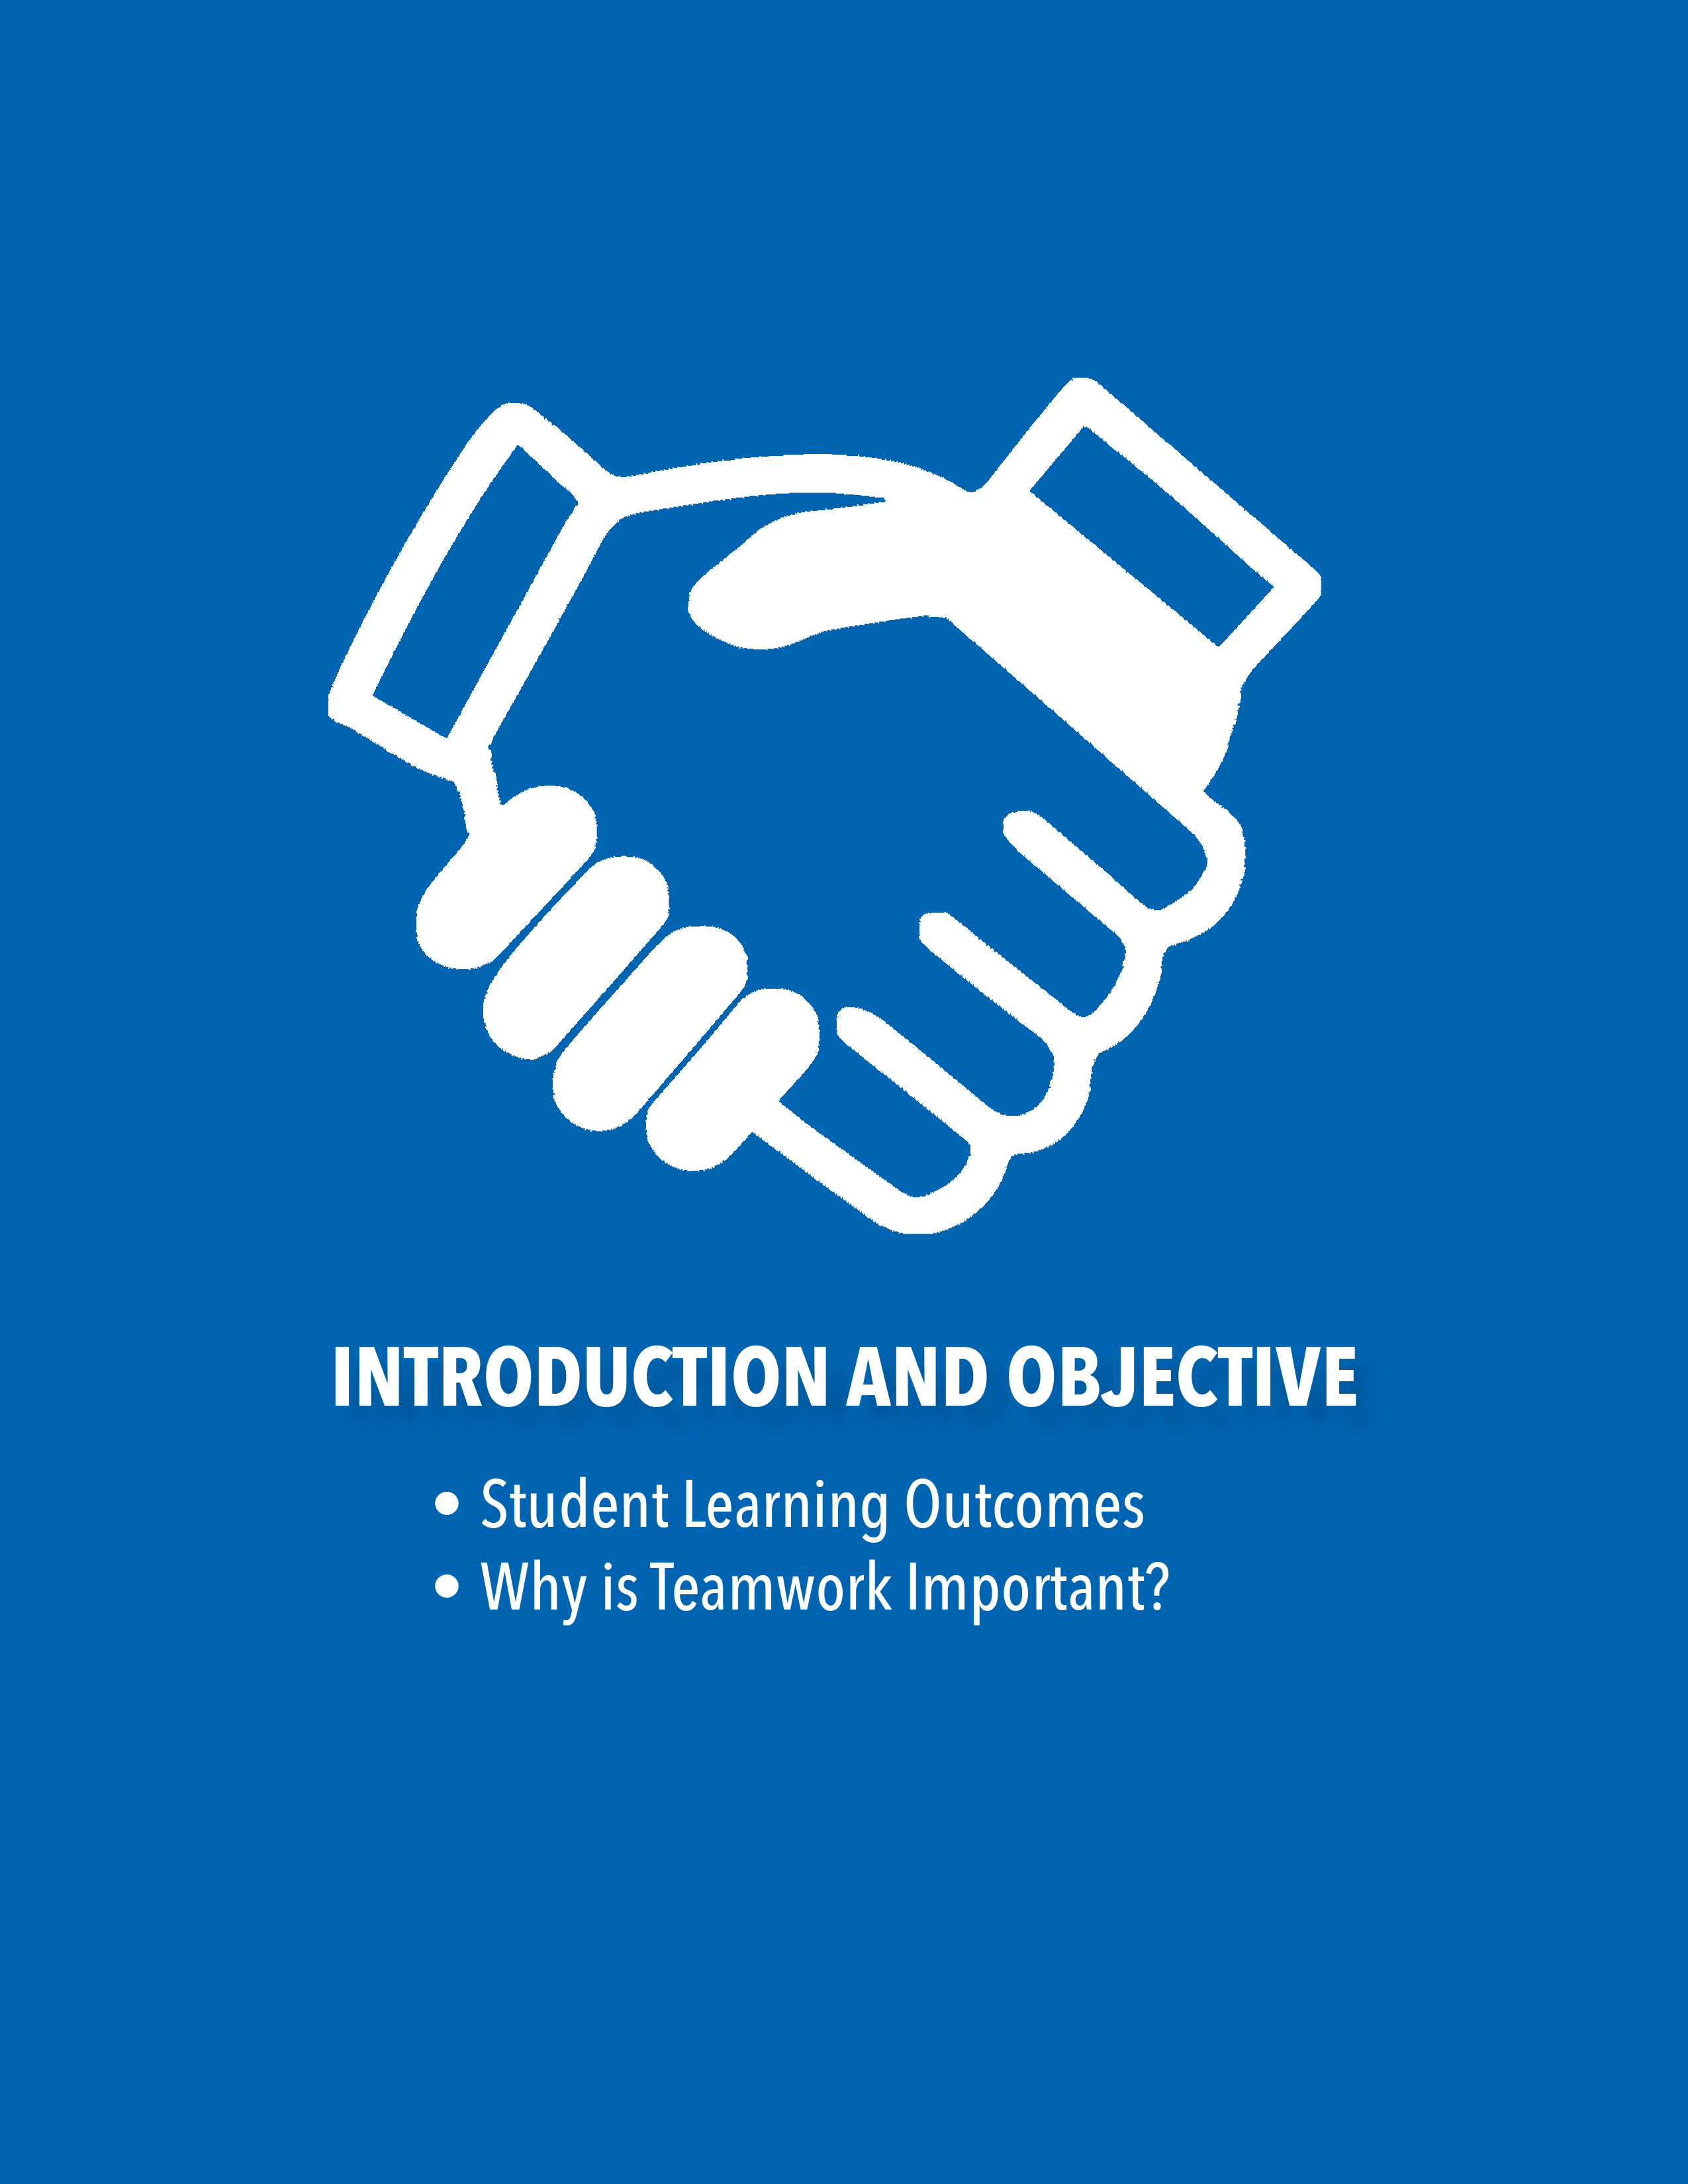 Introduction and Objective Section, Student Learning Outcomes, Why is Teamwork Important?